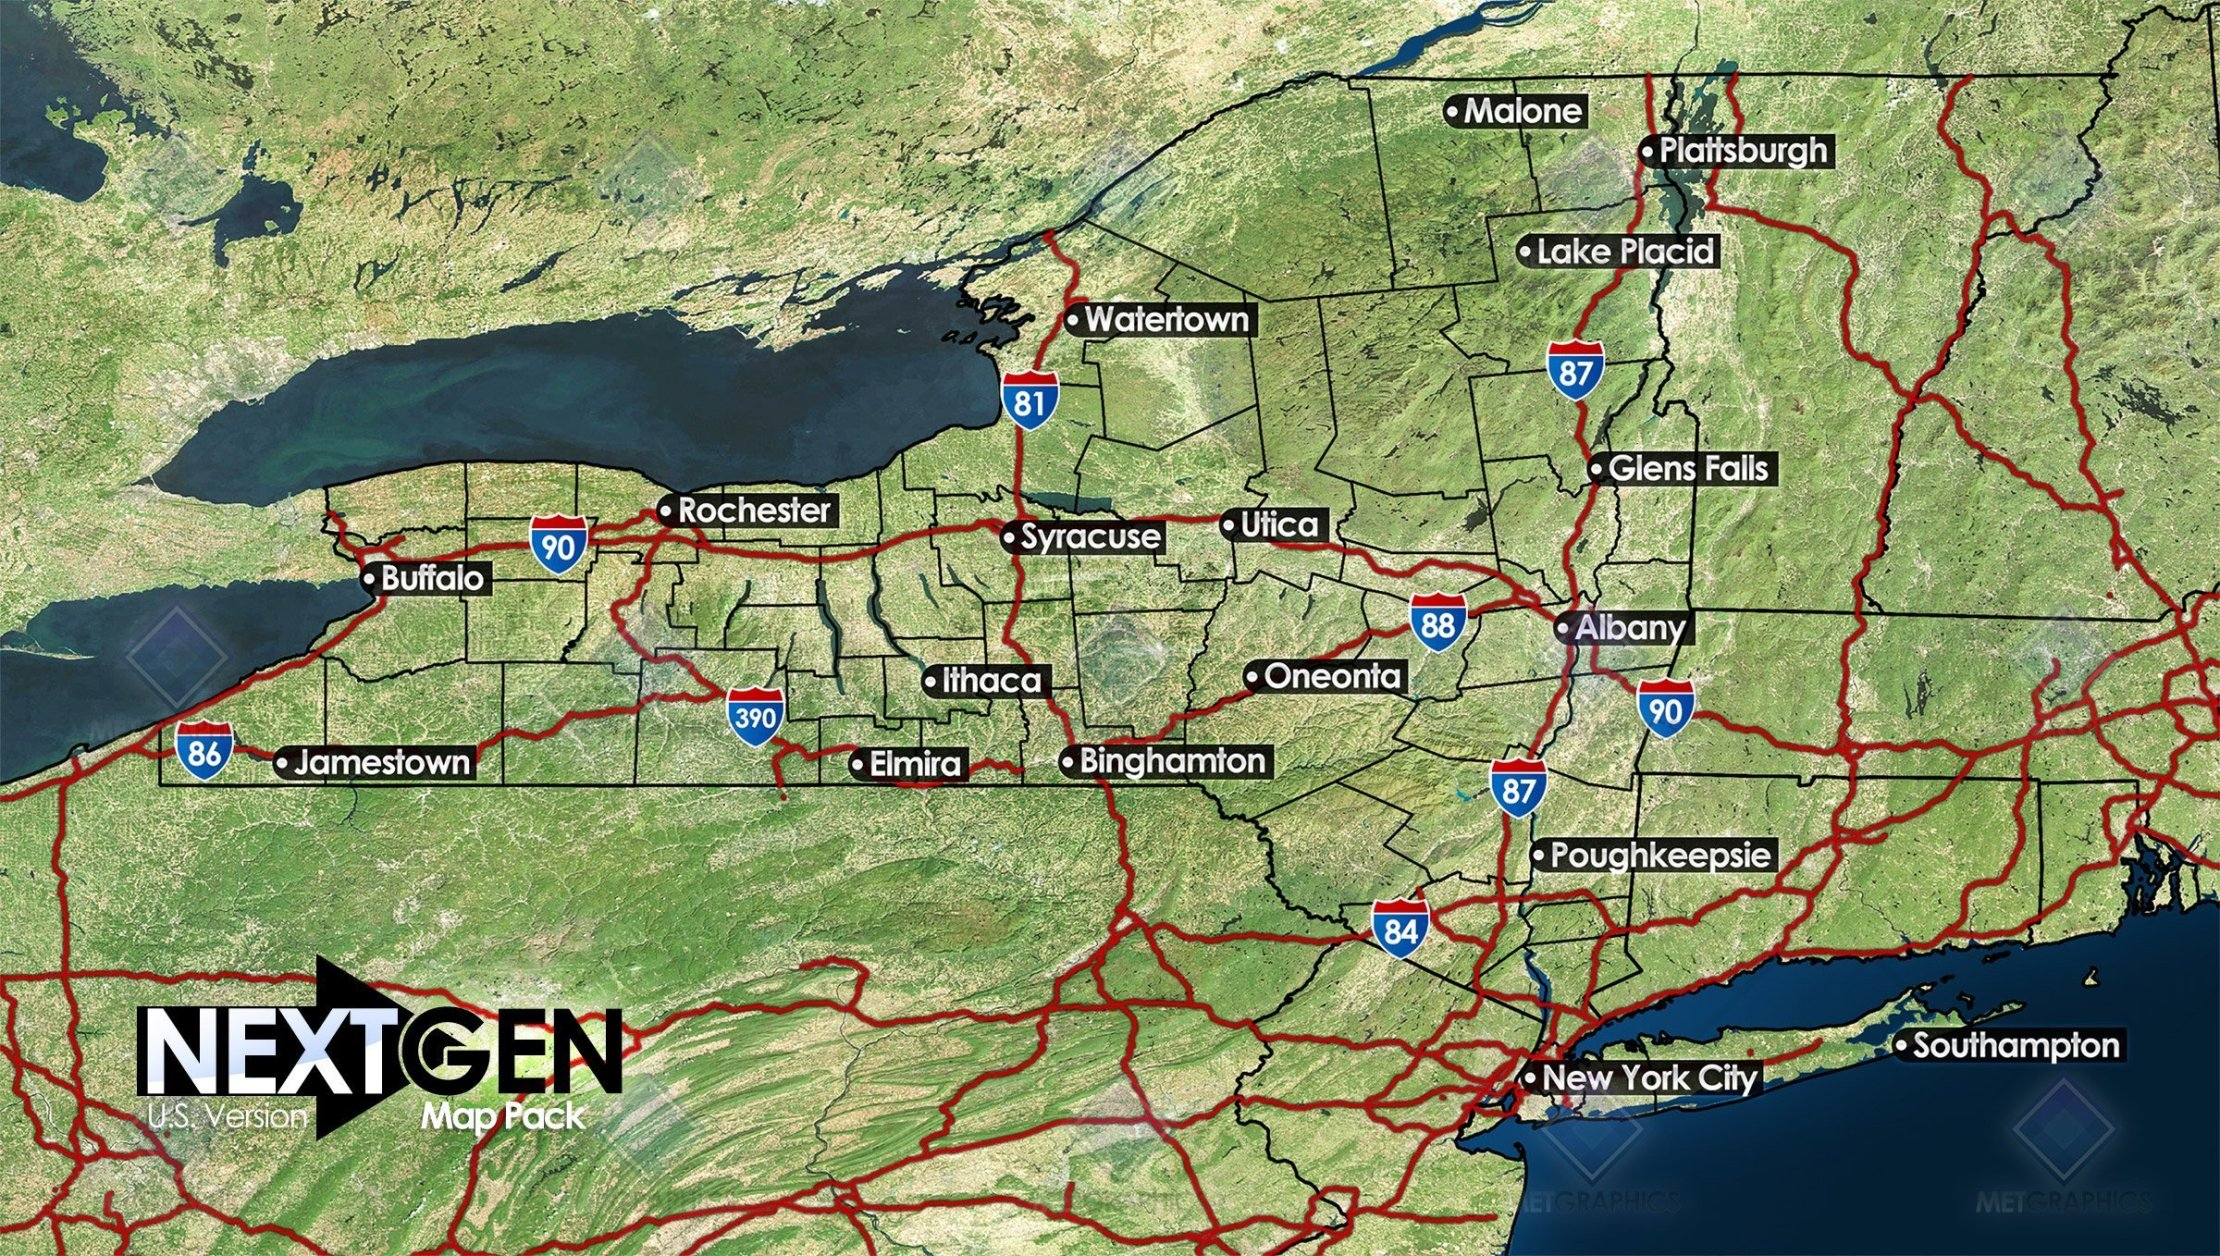 NextGen U.S. Map Pack | Weather Forecast Graphics ... on us map zoom in, united states zoomed in, europe map zoomed in, world map zoomed in,